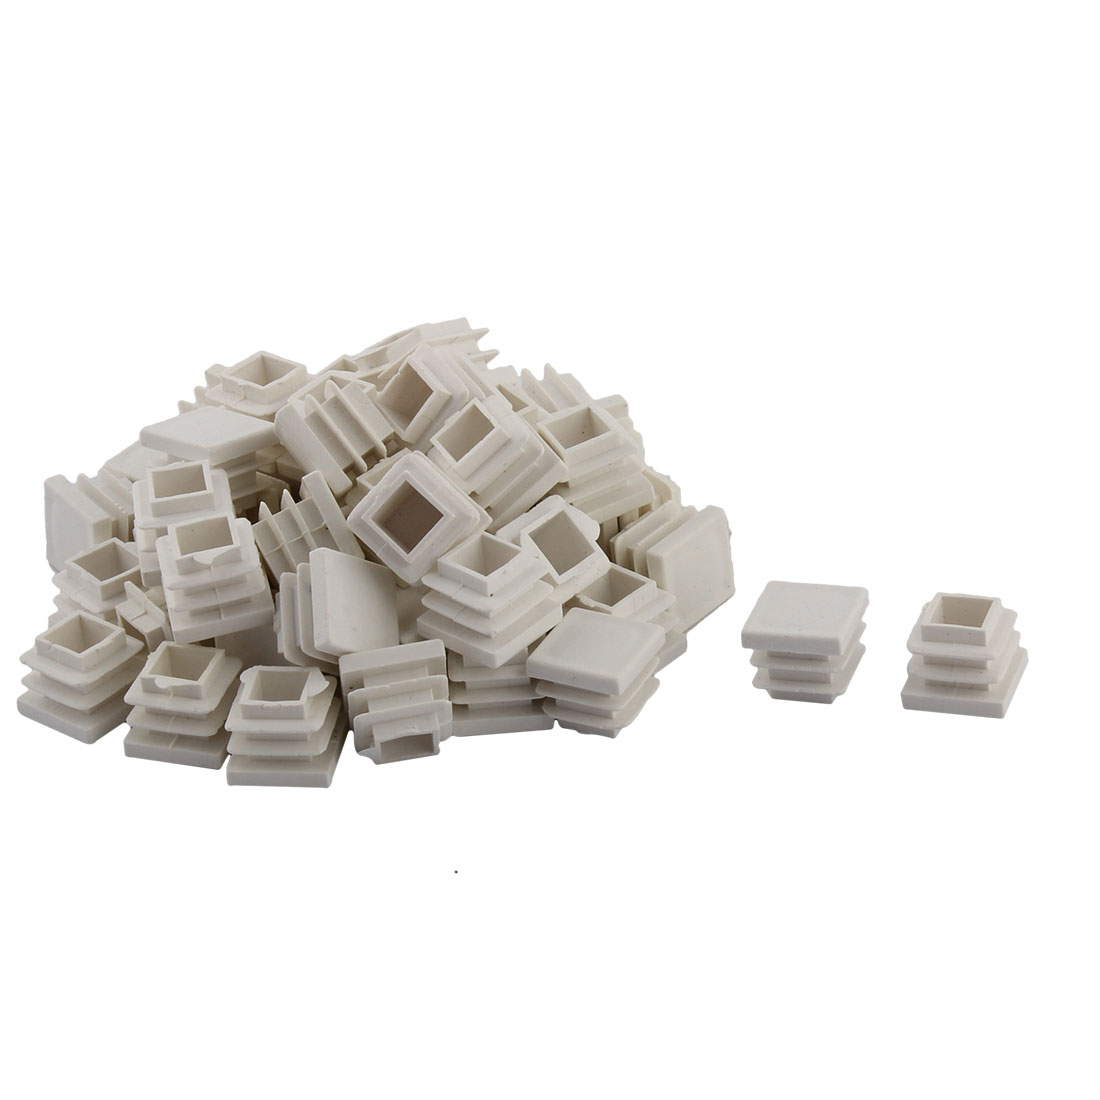 Household Plastic Square Shaped Table Chair Leg Tube Insert White 16 x 16mm 50 PCS